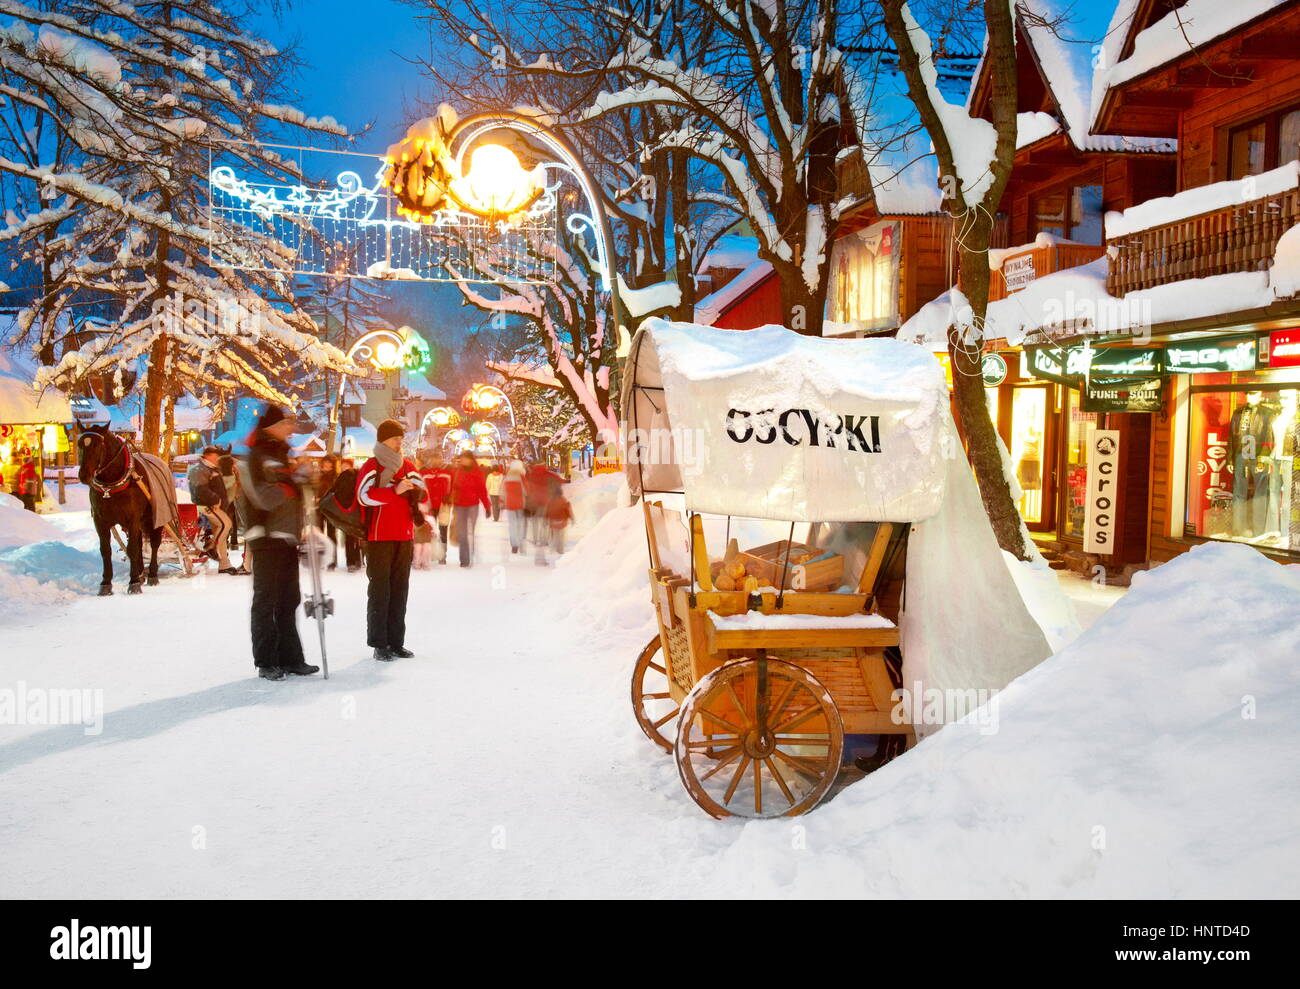 Winter city scene in Zakopane Village, Poland - Stock Image